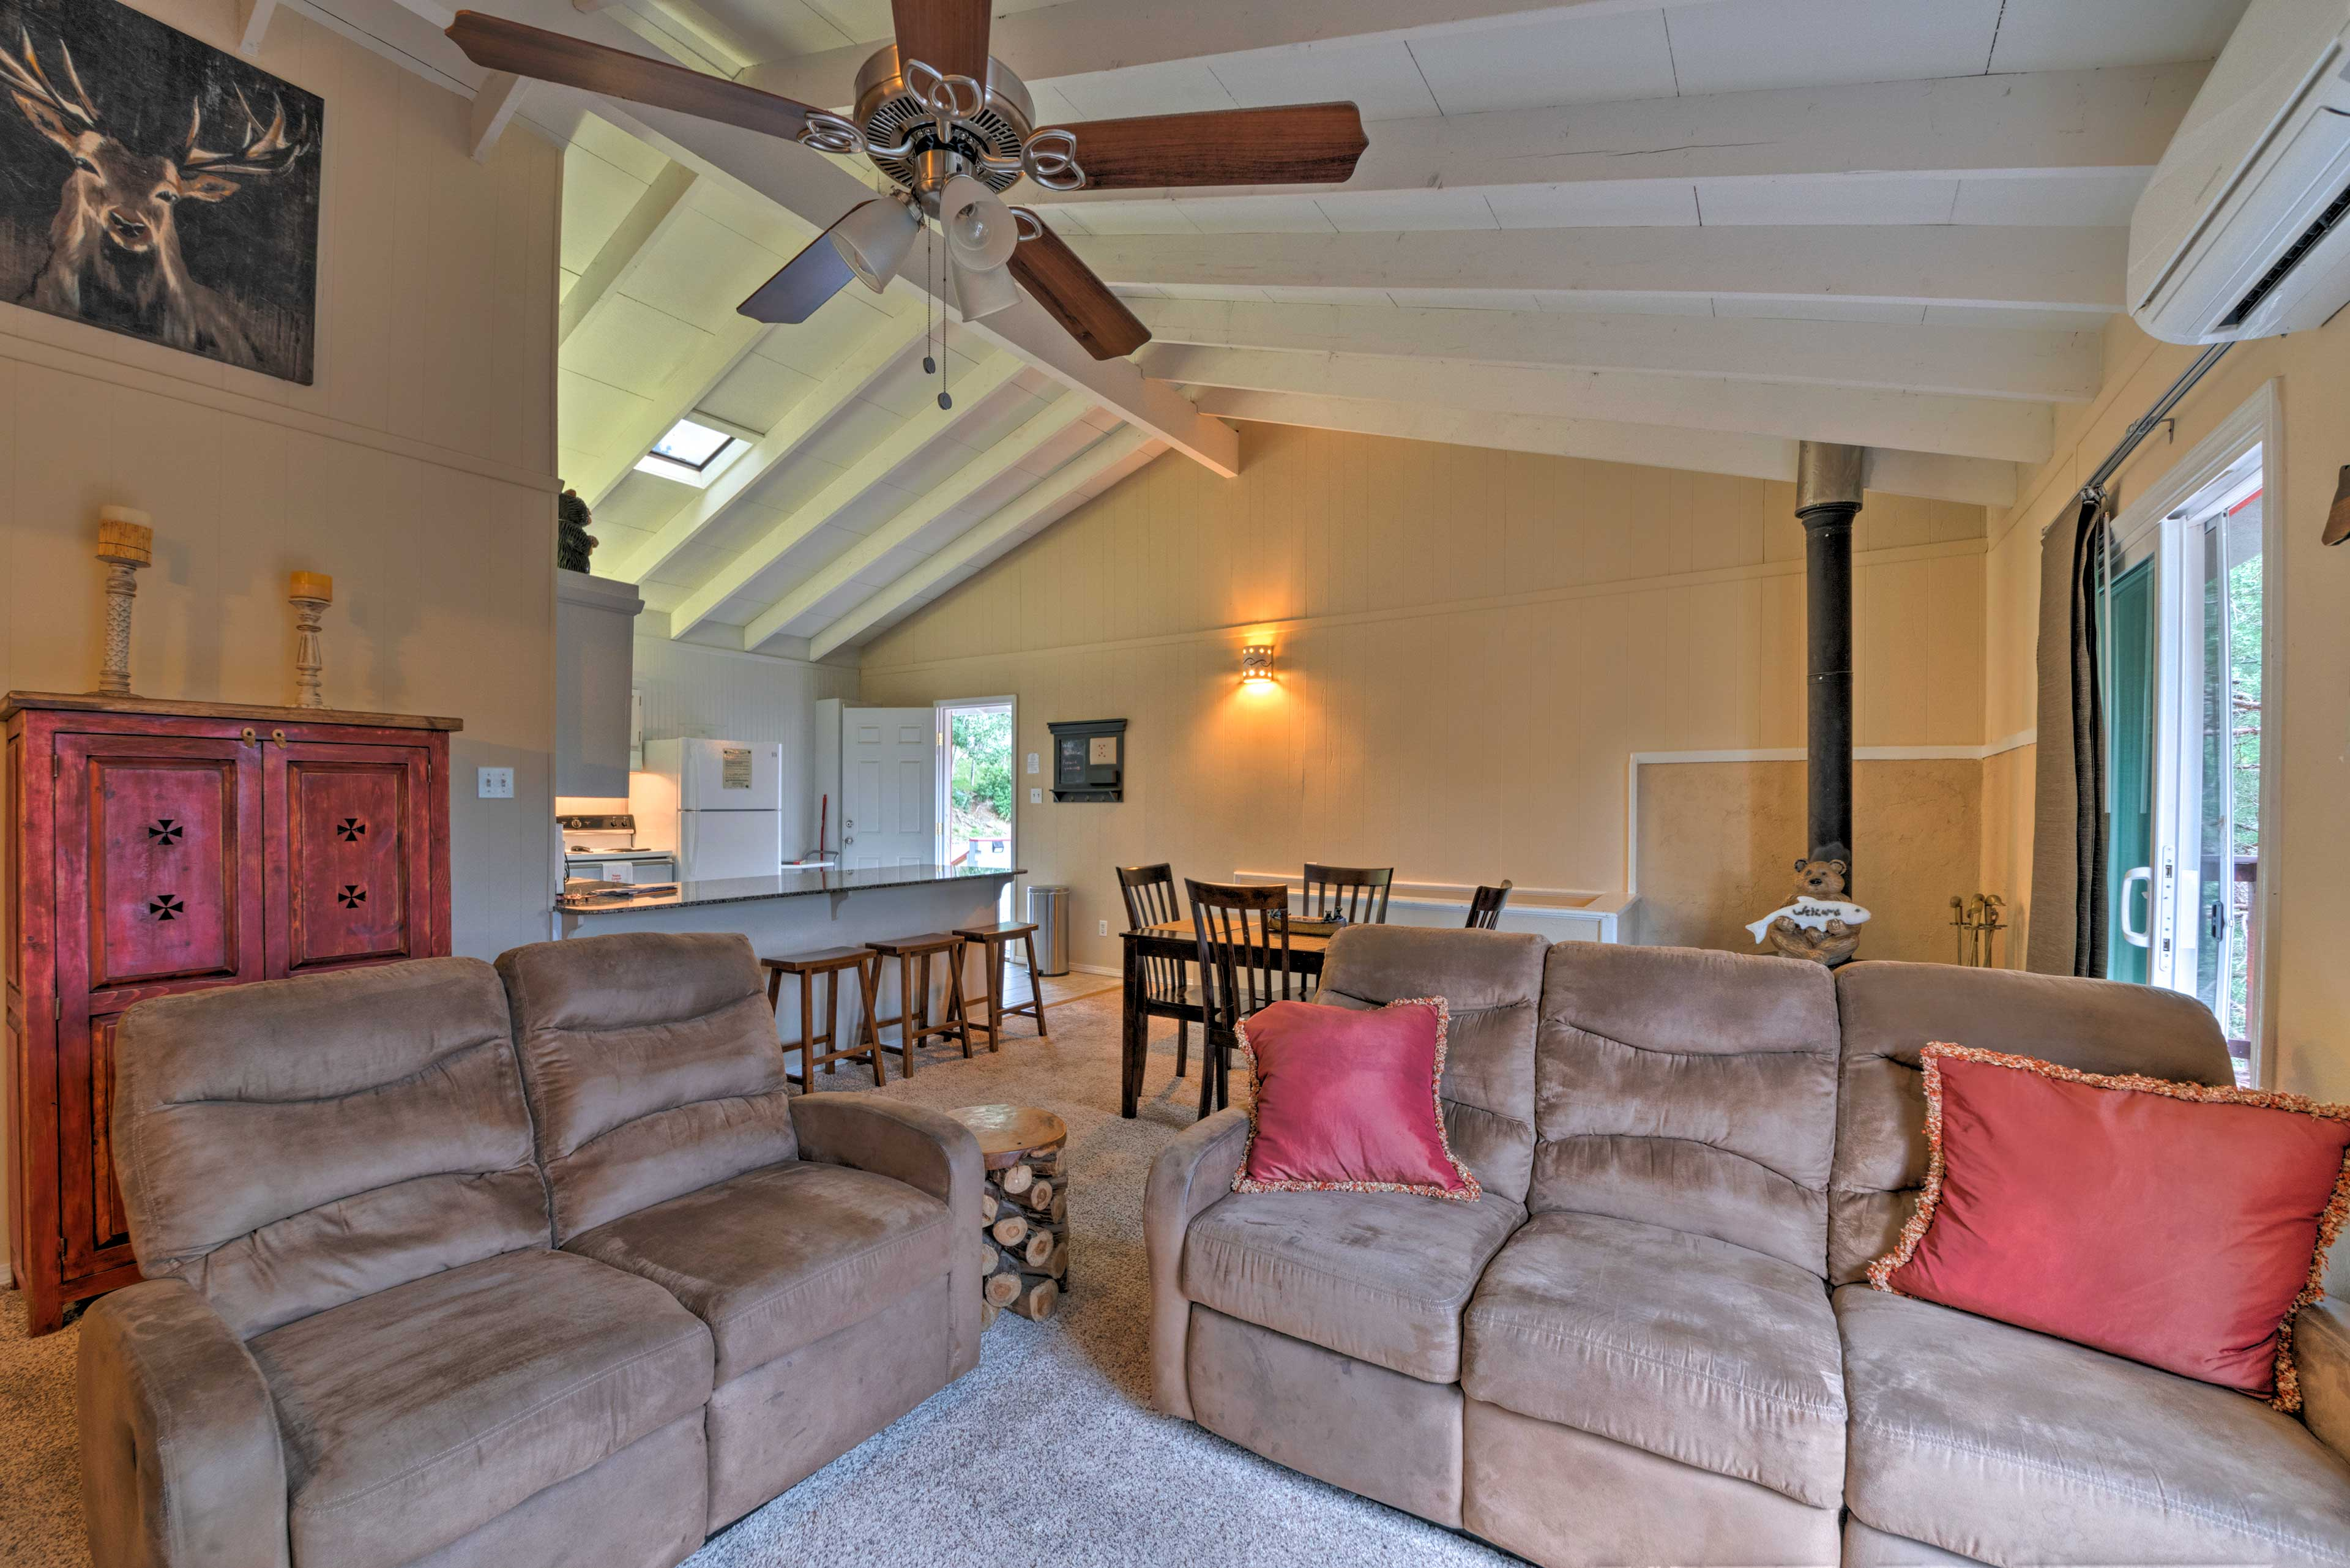 Spend quality time in the inviting living area.